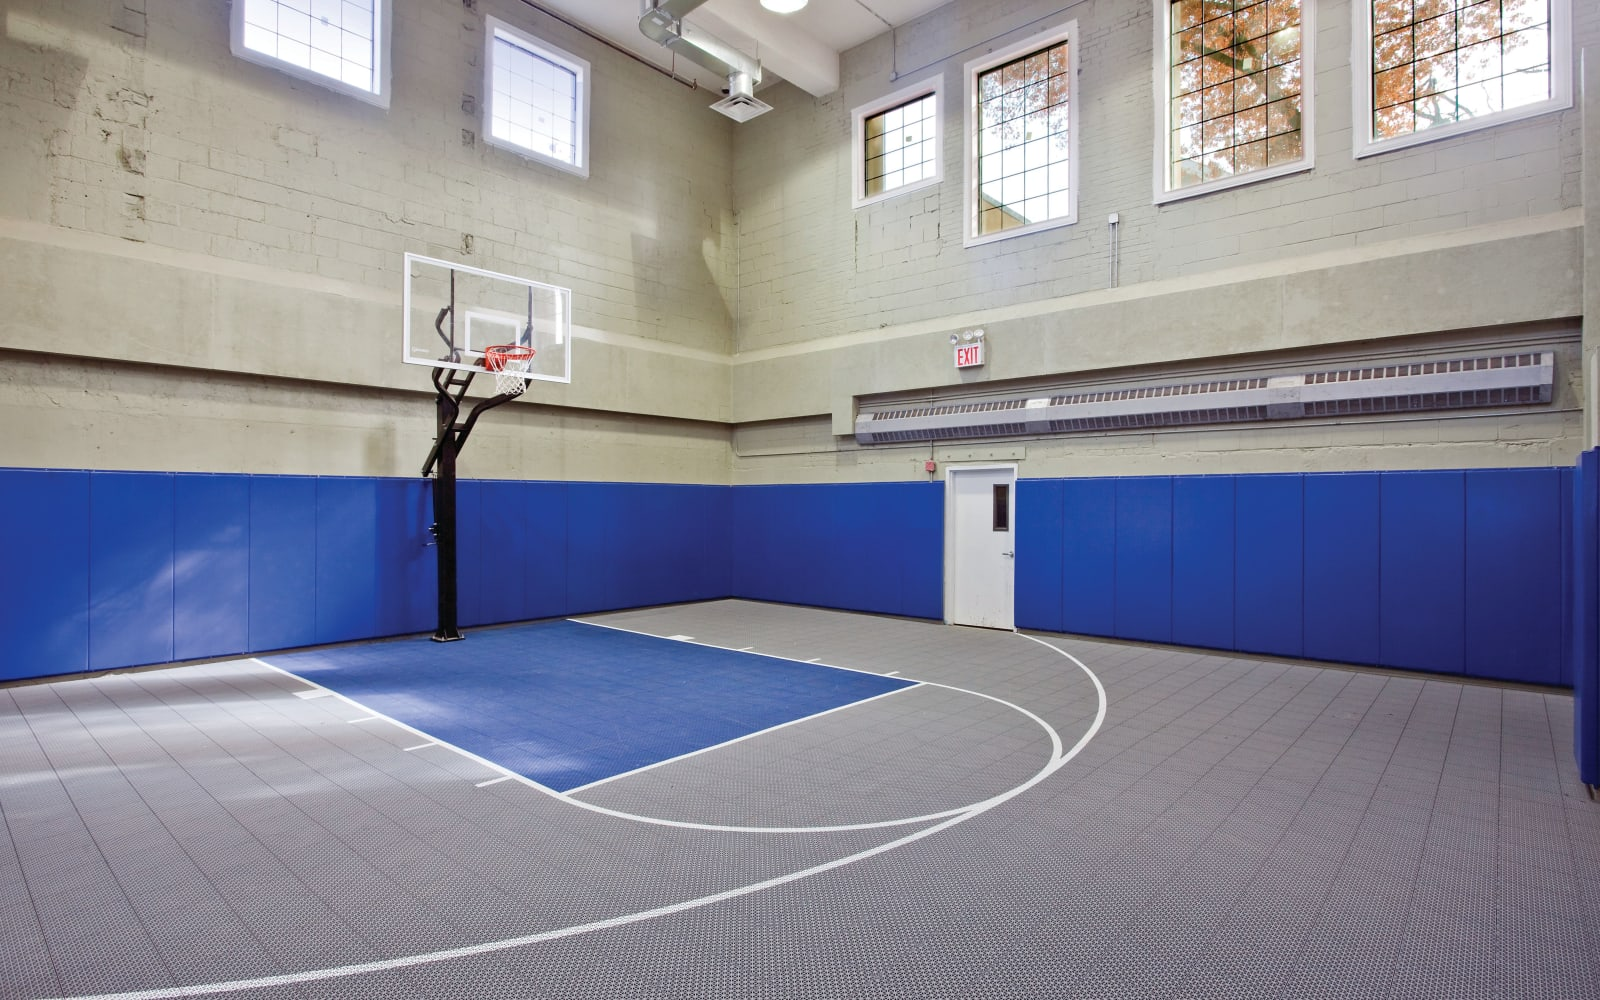 Indoor basketball court at Markham Gardens in Staten Island, New York